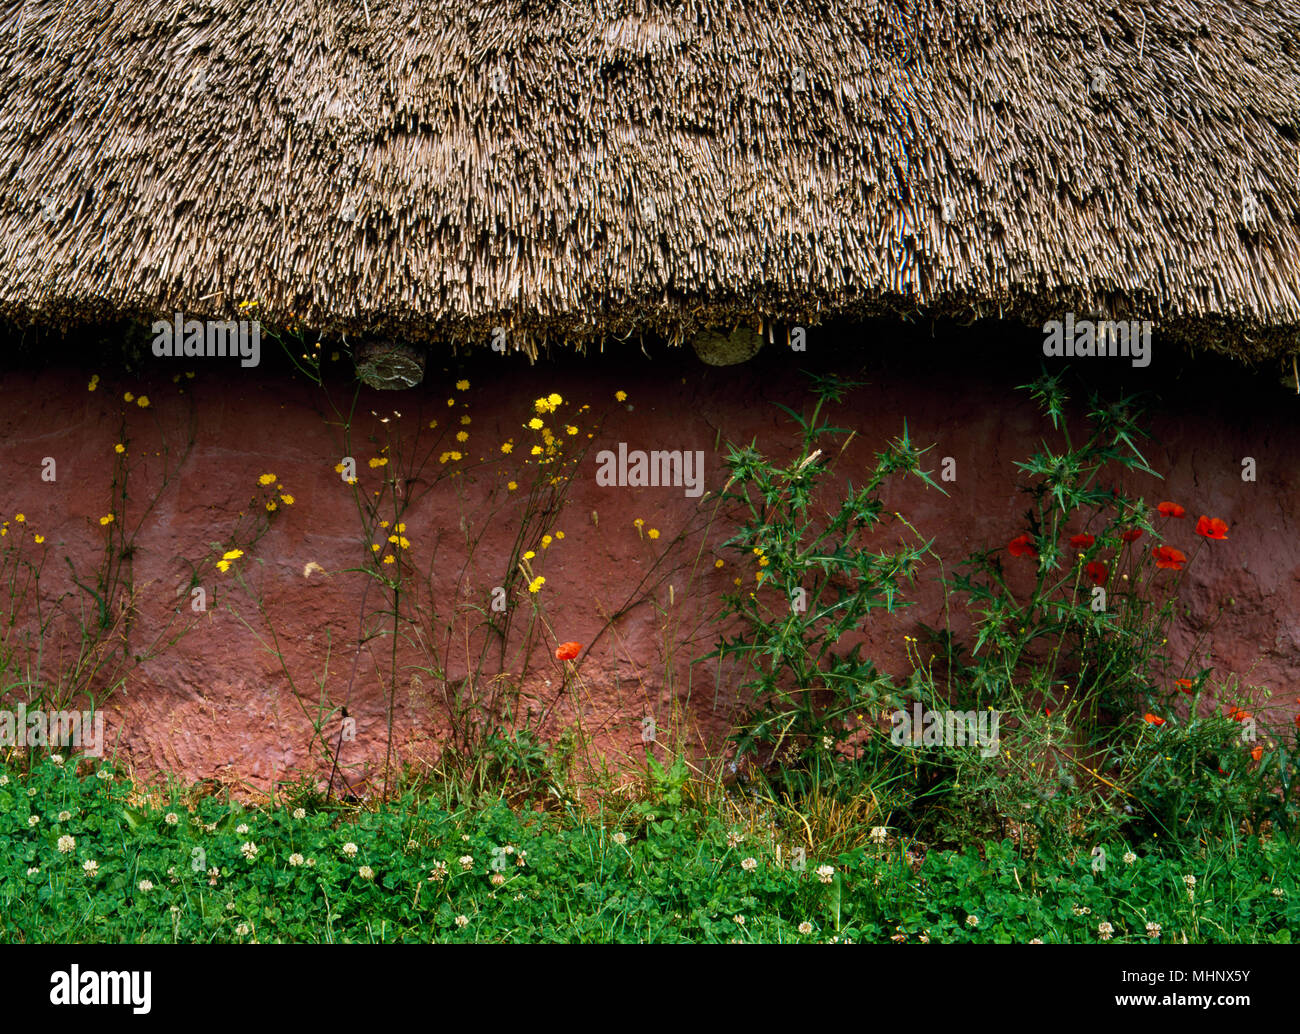 Detail of the outside of the the Moel y Gerddi house at Butser Ancient Farm, Hampshire, UK; the wattle and daub wall, protected by the eaves of the th - Stock Image